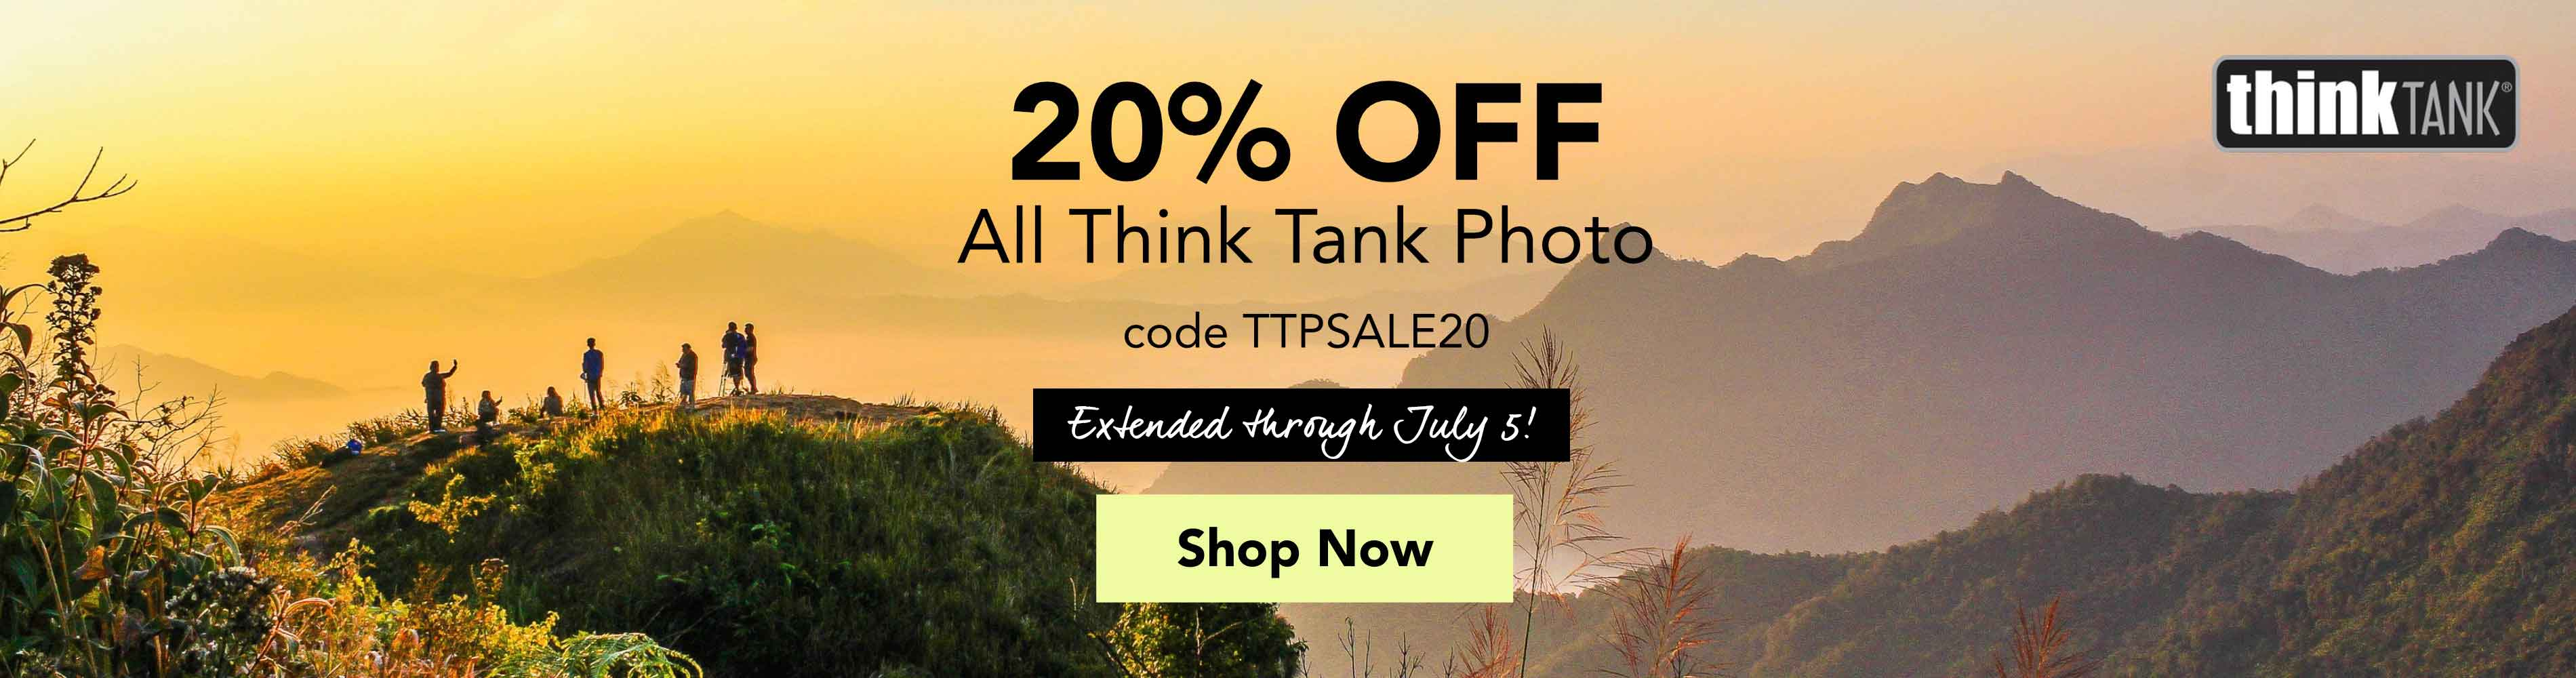 20% Off All Think Tank Photo with code TTPSALE20 extended through July 5! Shop Now >